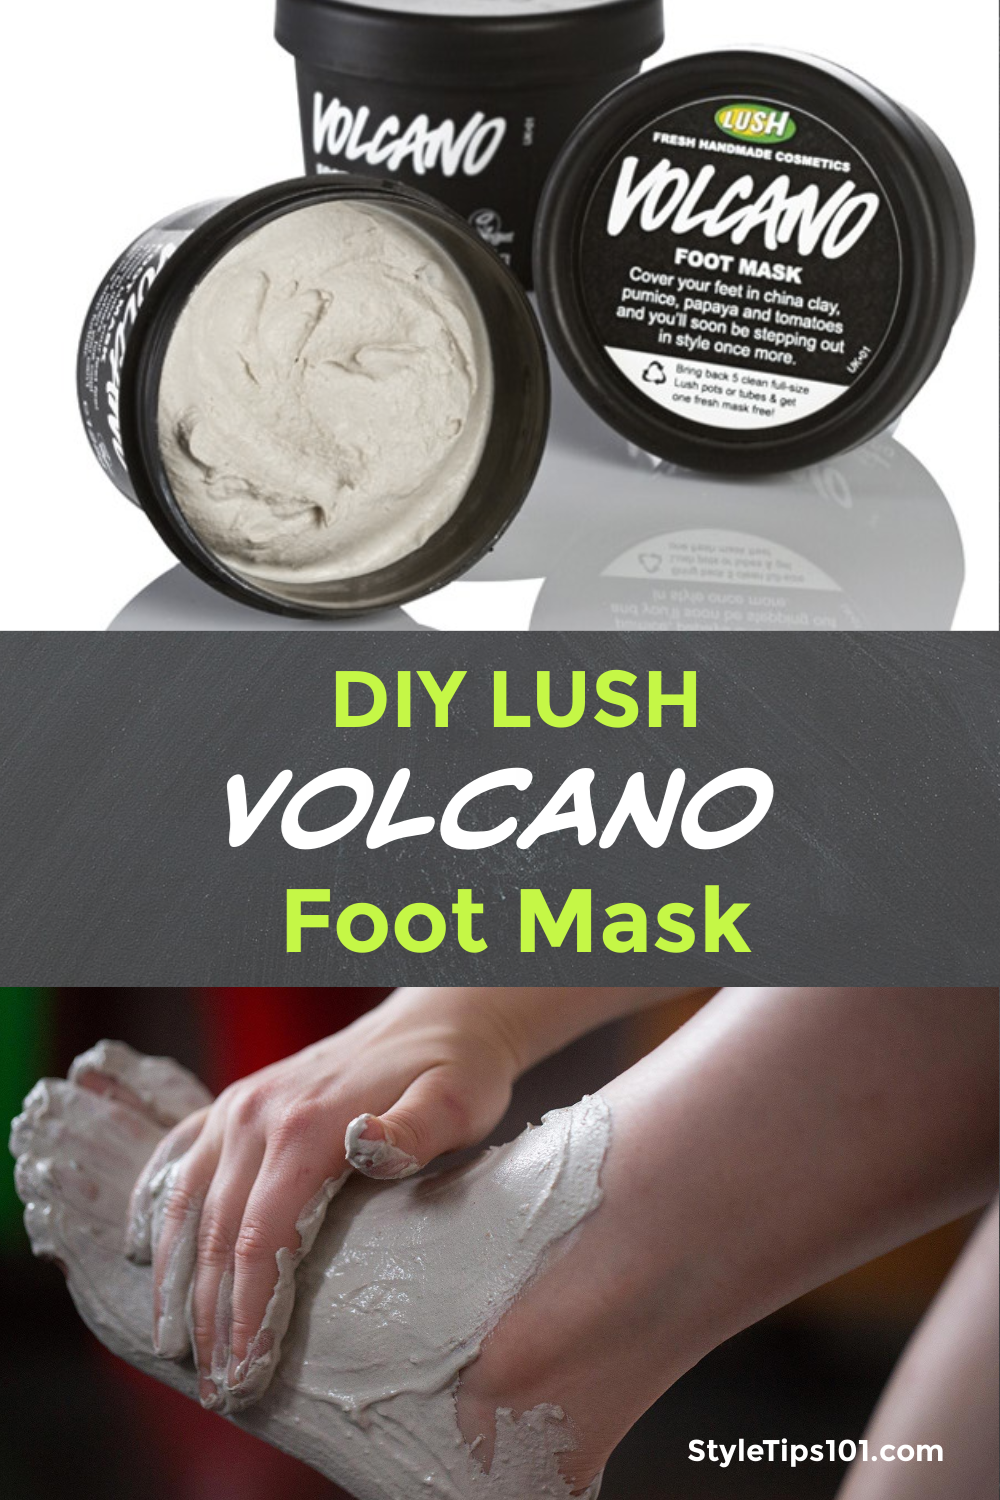 This DIY Lush Volcano foot mask is an amazing example of what you can make at home with just a few simple ingredients! #diylushvolcanofootmask #lushdupes